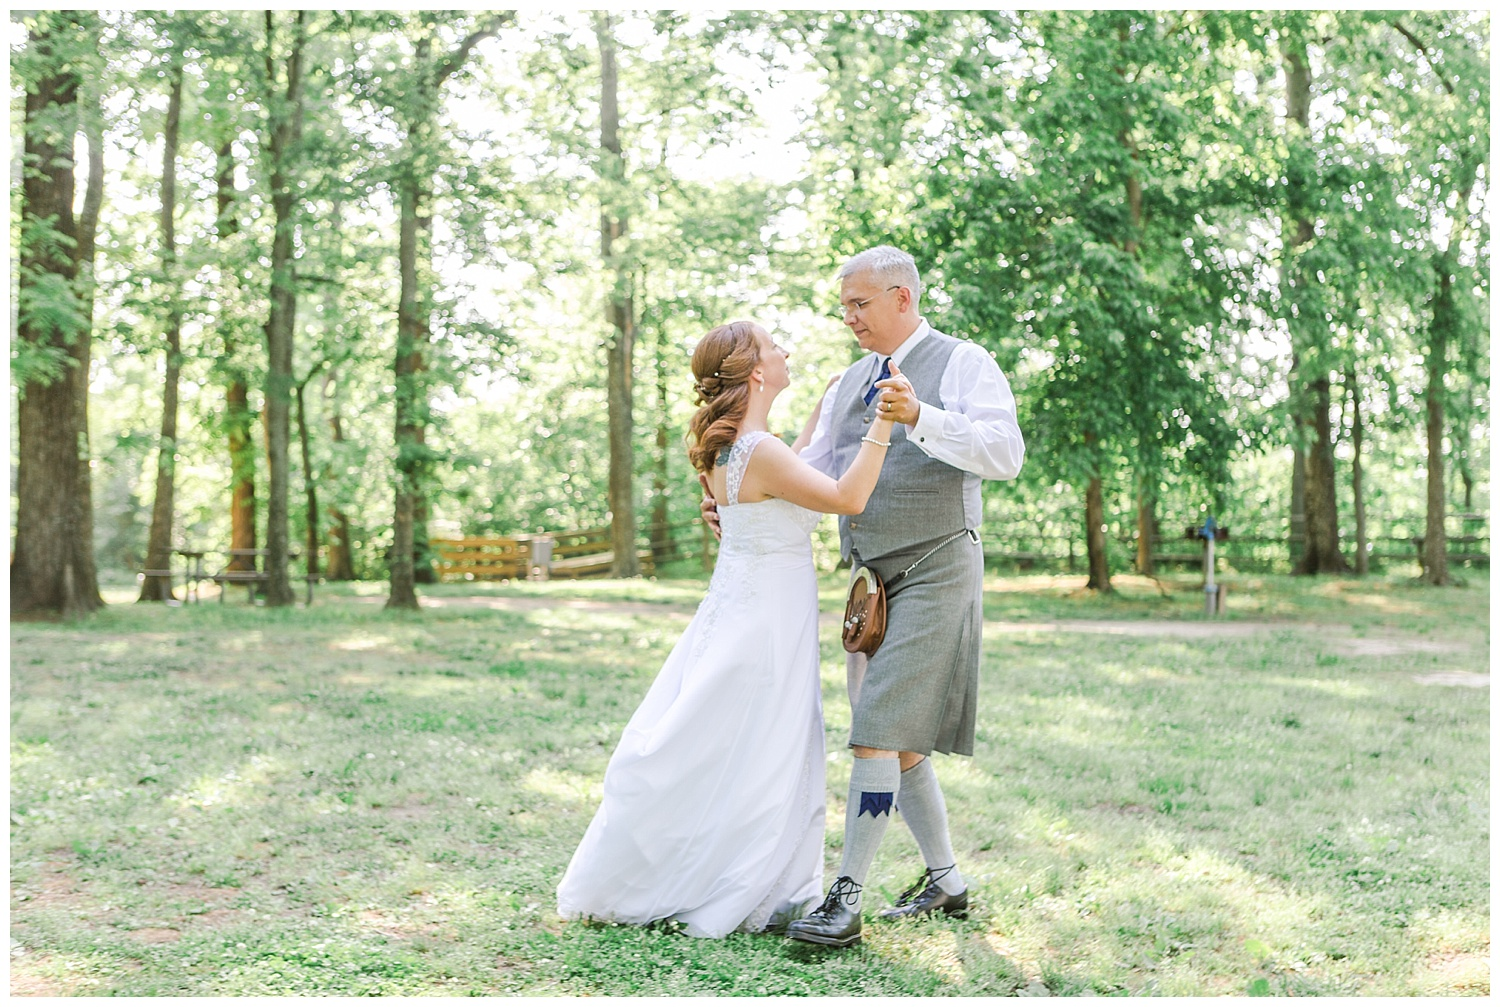 Henricus Historical Park, Virginia Wedding - Jessica + David